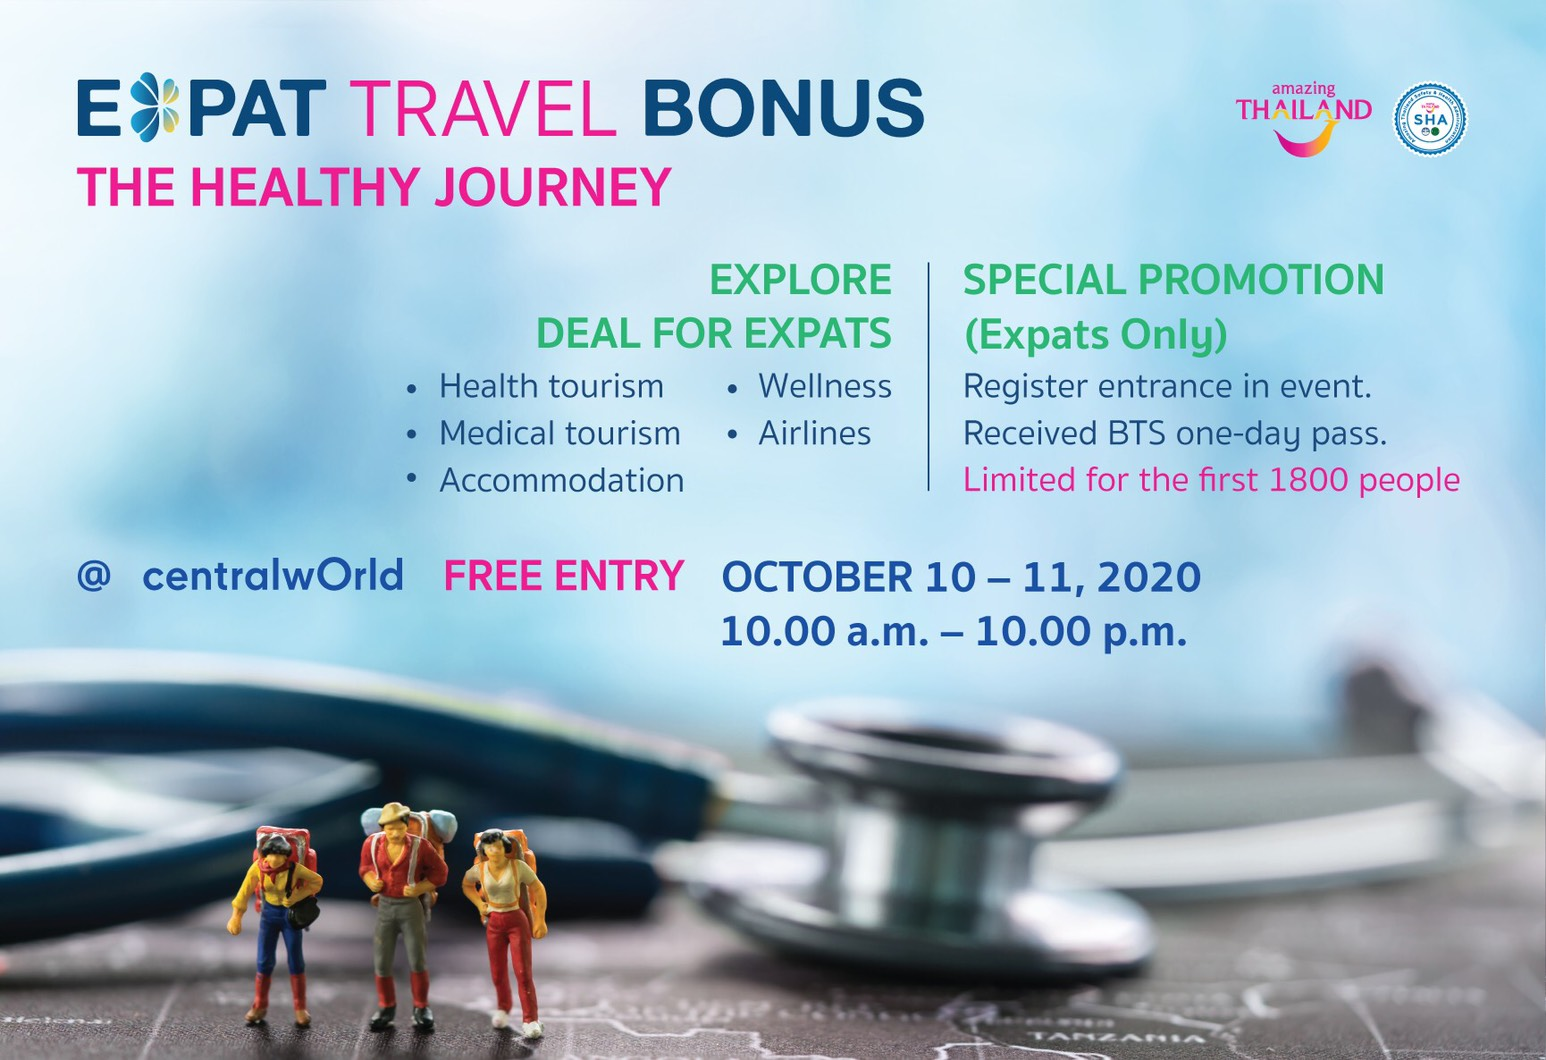 """, TAT launches """"Expat Travel Bonus, The Healthy Journey"""" promotional campaign, For Immediate Release 